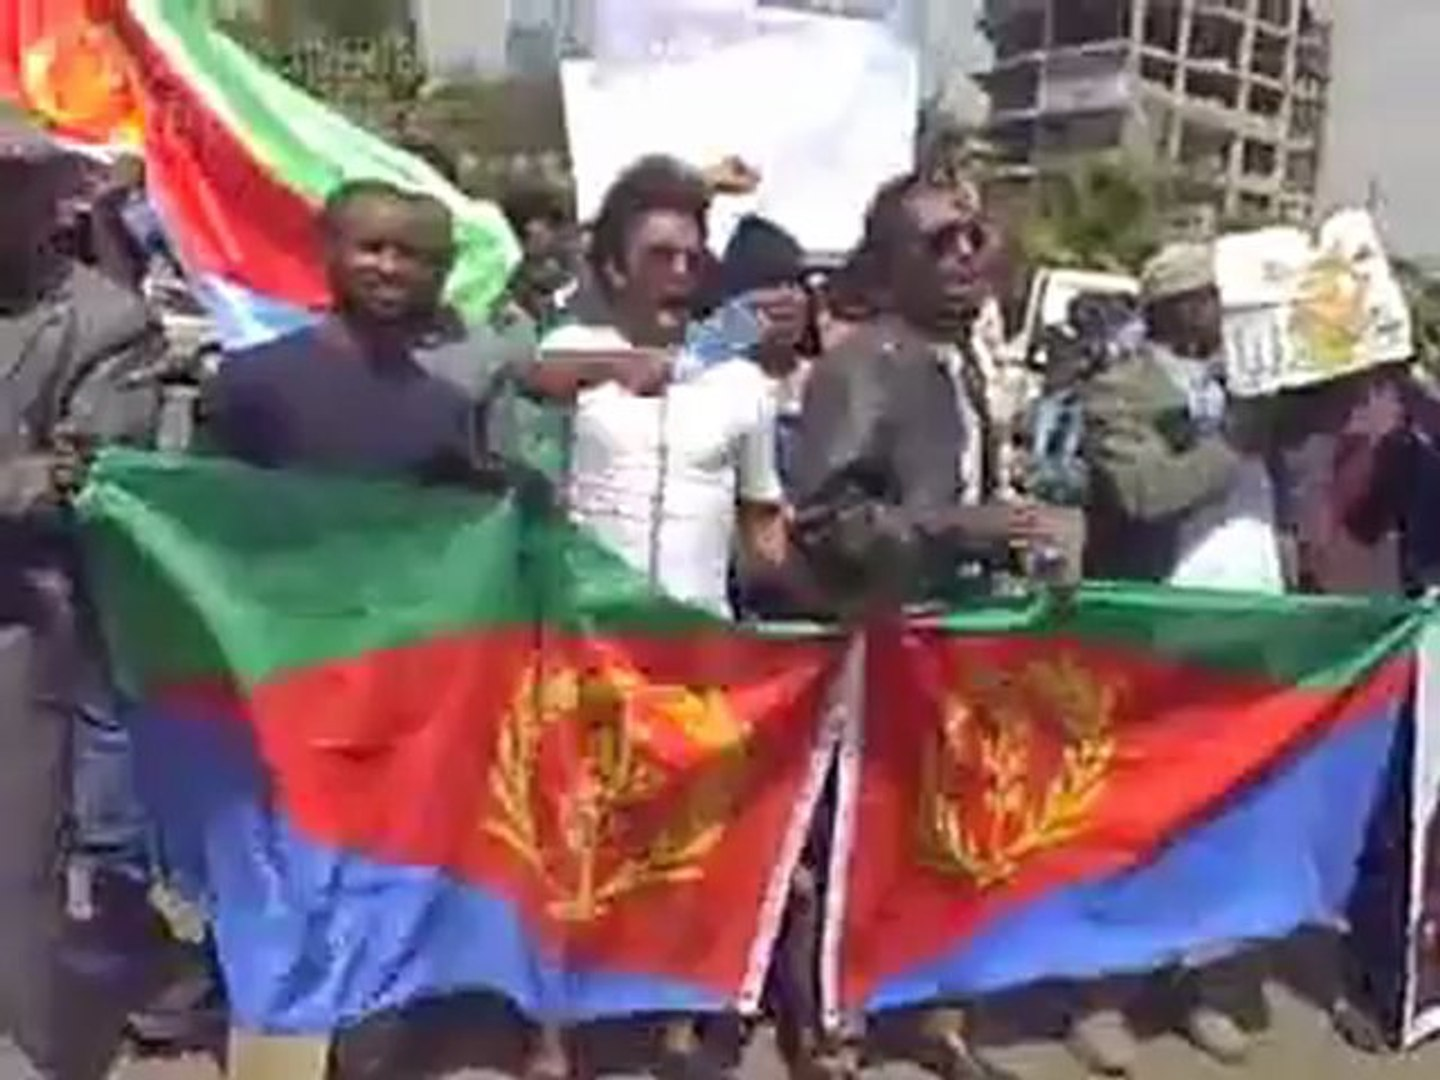 Eritreans in Addis Ababa protest against their government